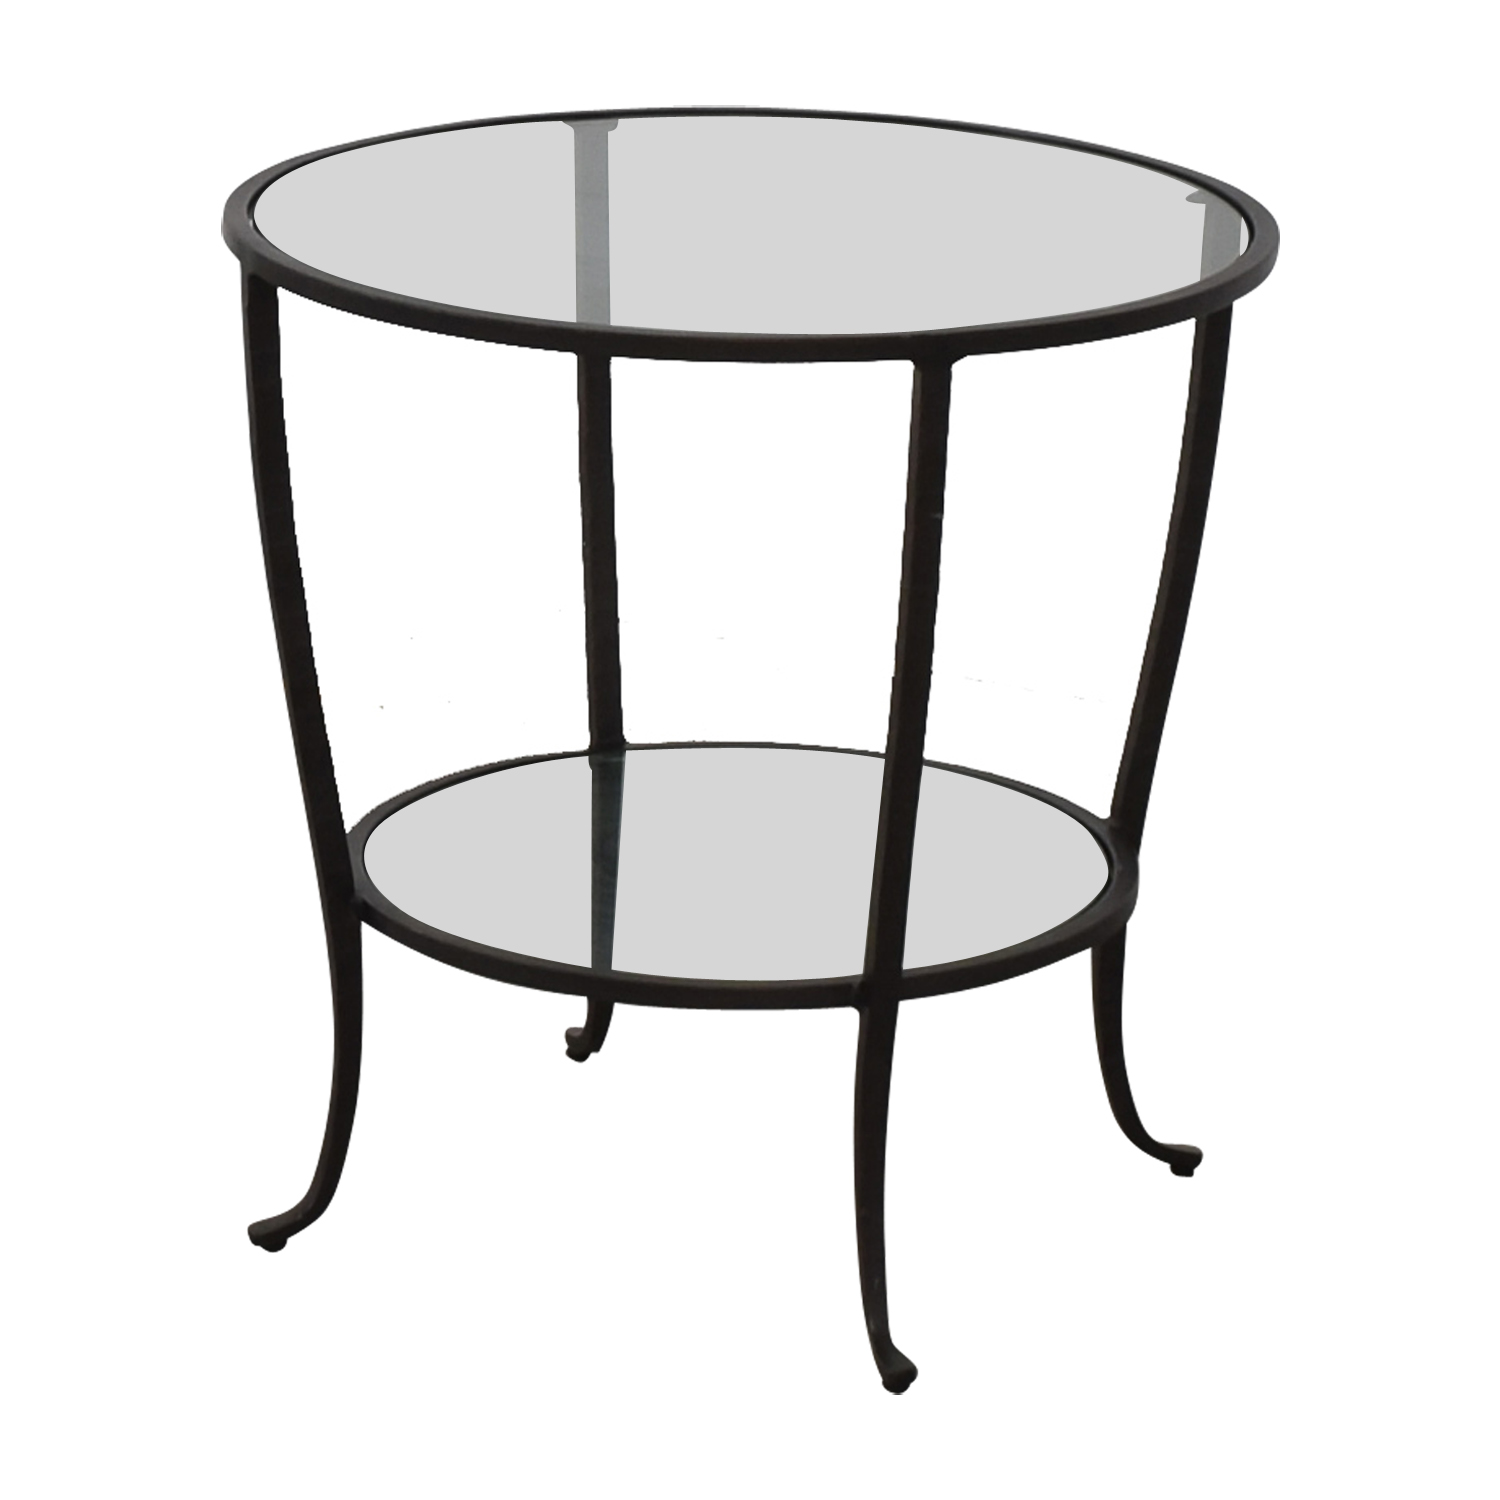 Pottery Barn Pottery Barn Round Metal & Glass Table used